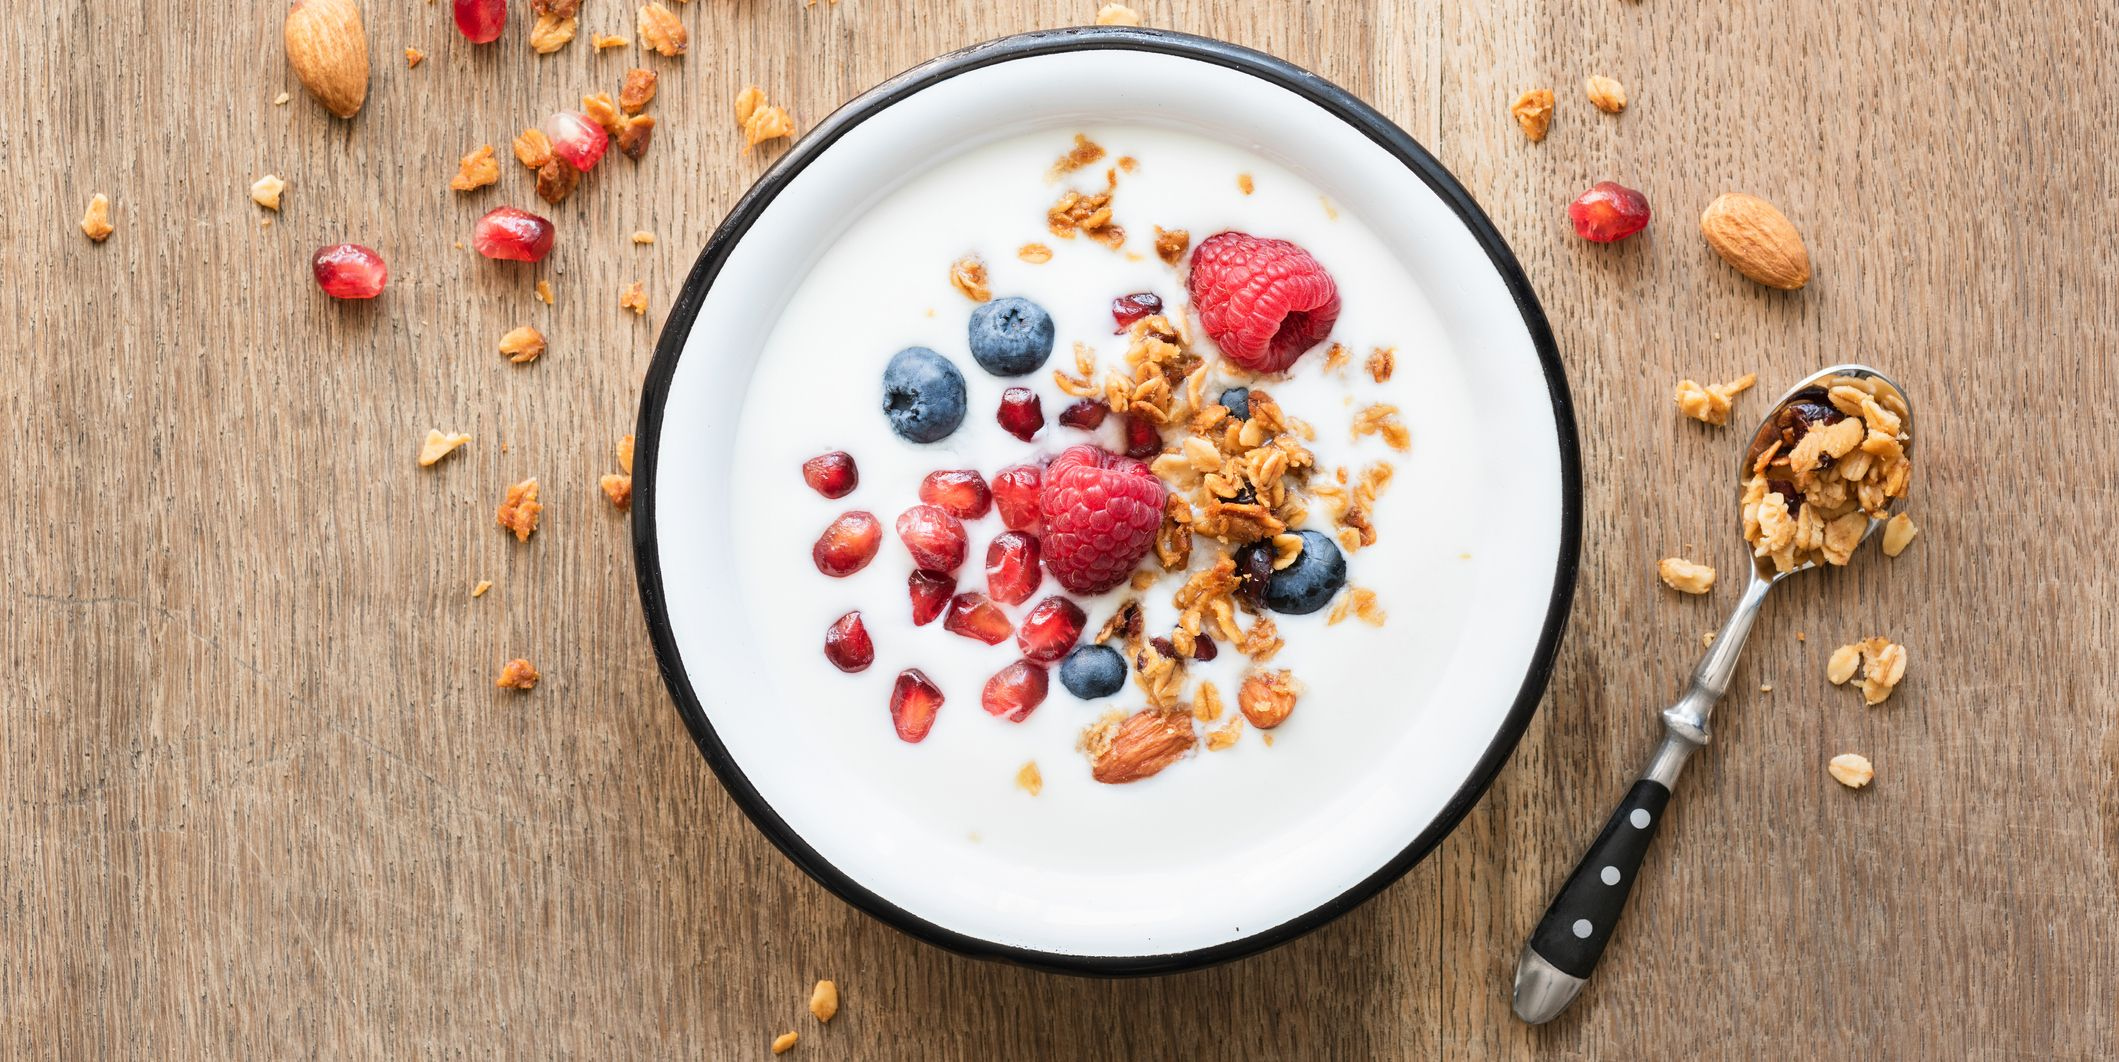 Greek yogurt with granola and berries on wooden table